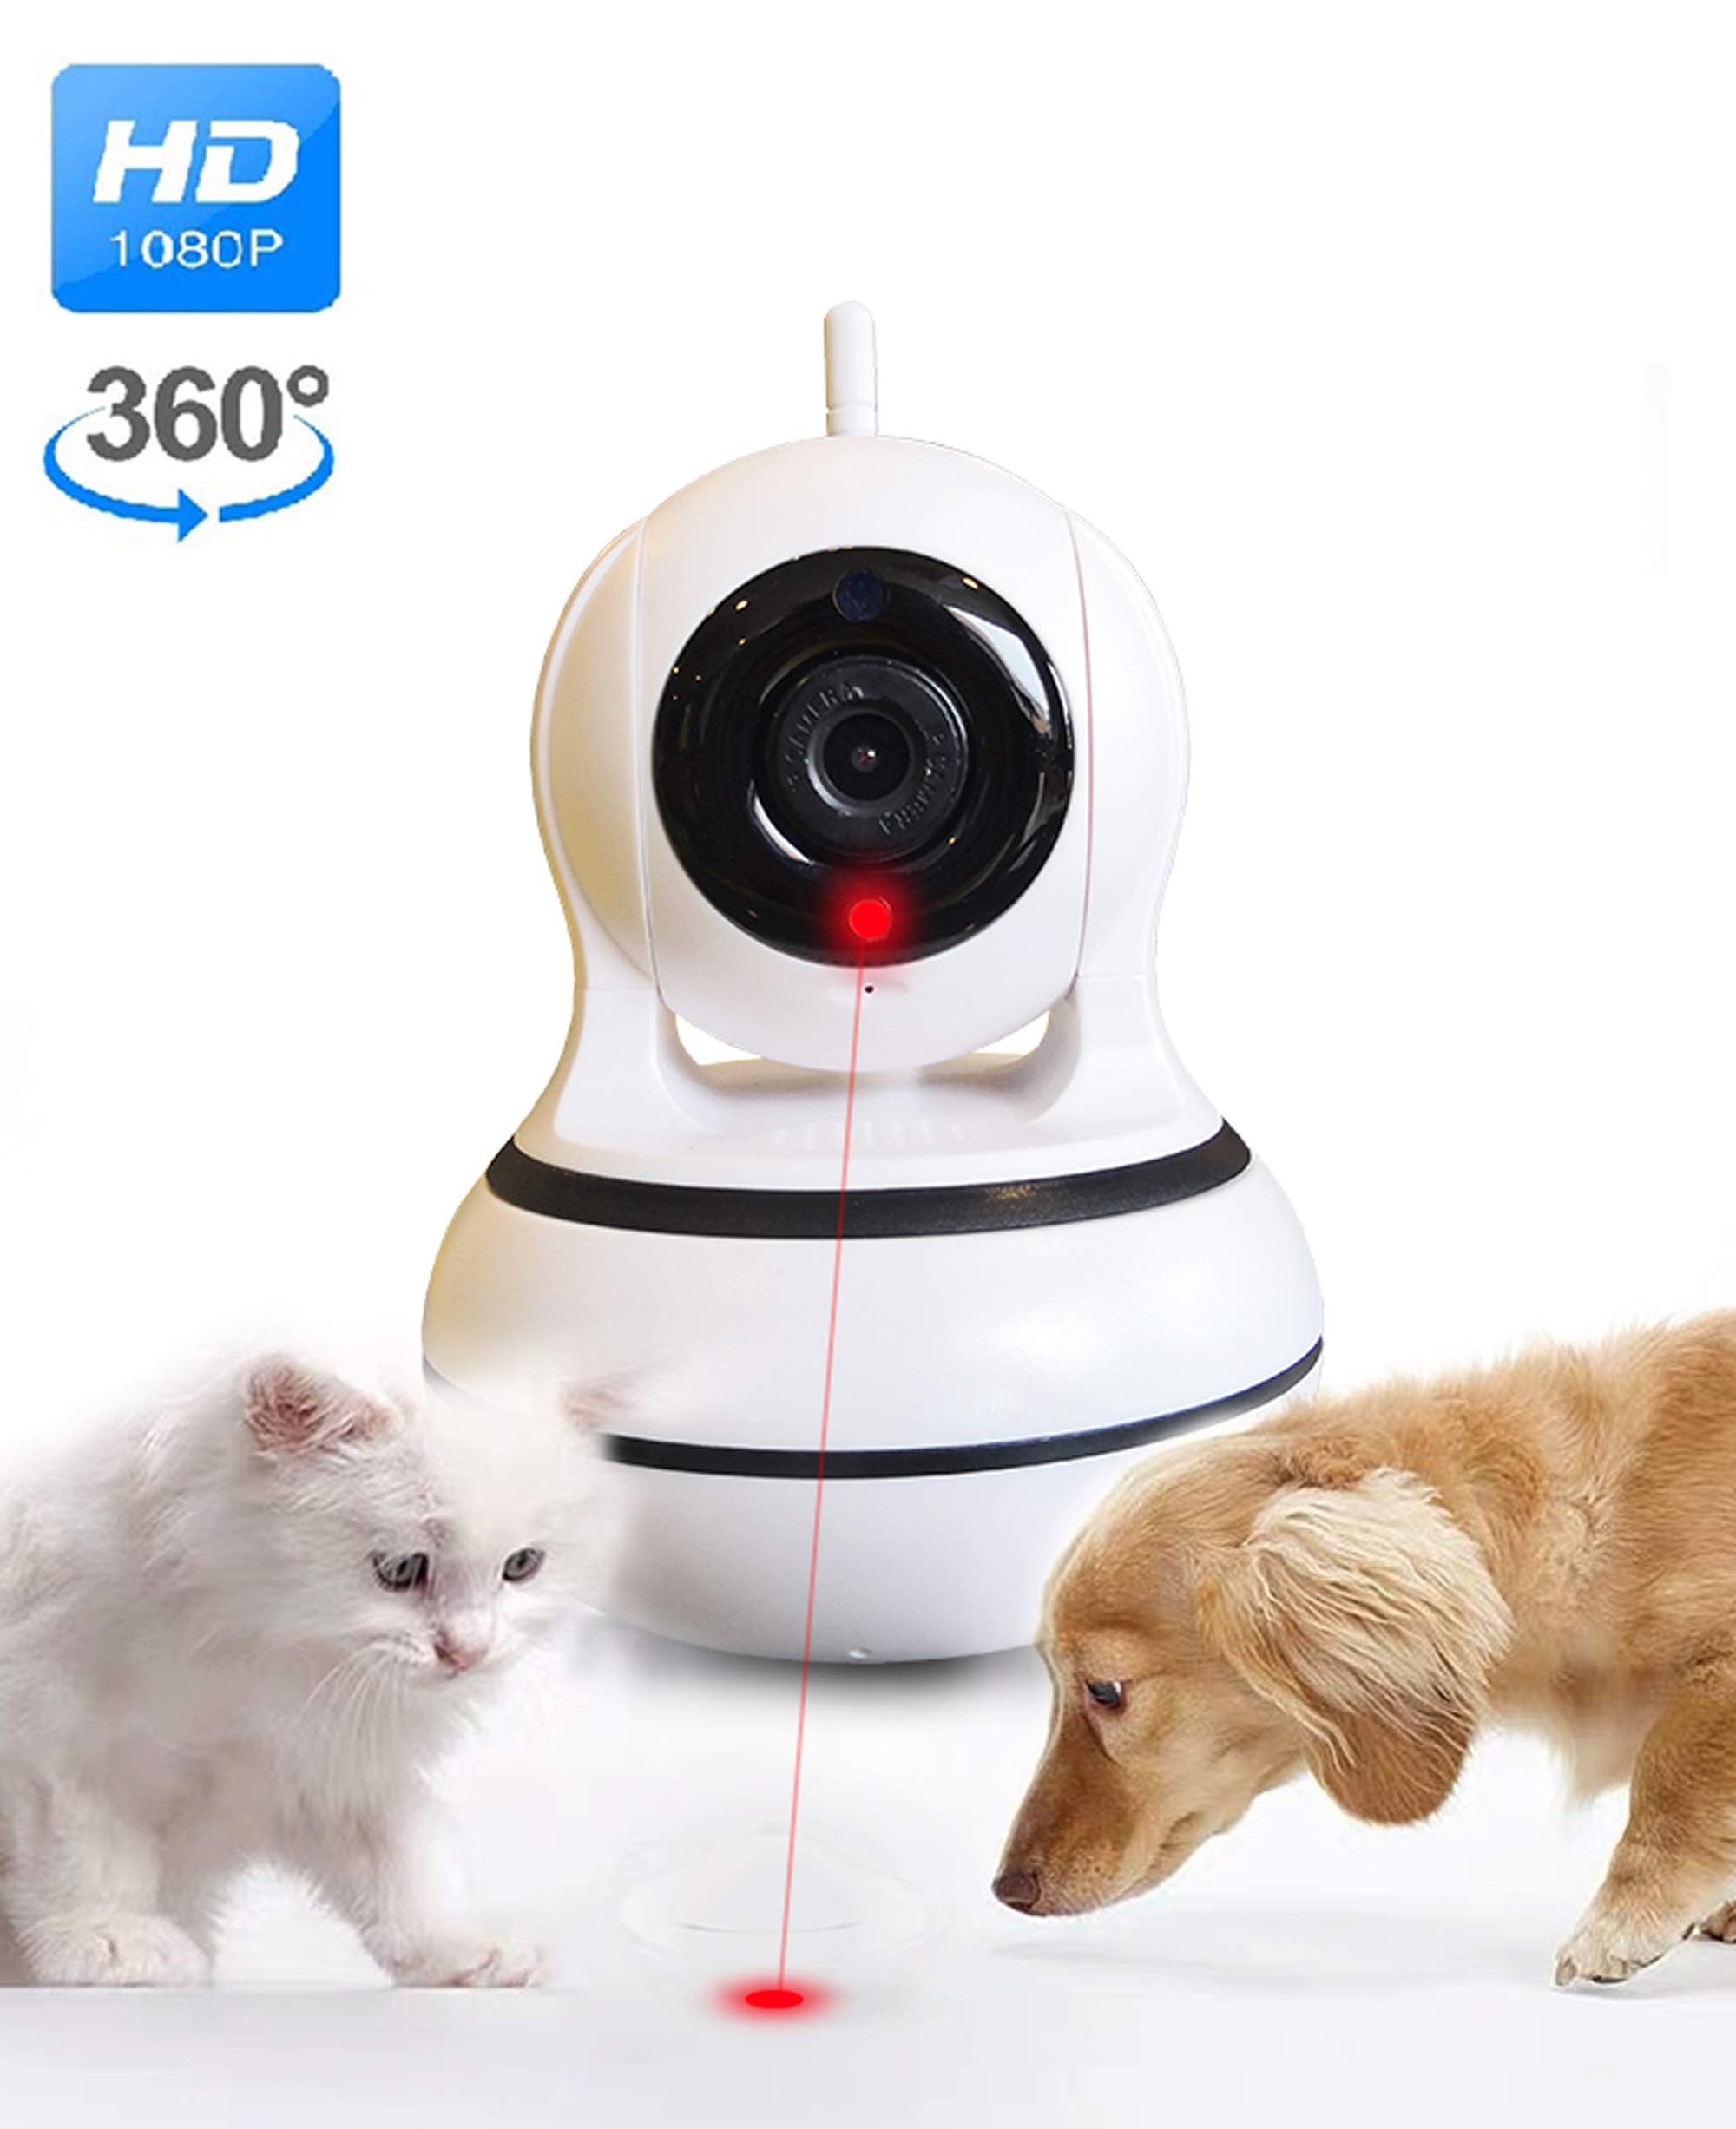 DOGCOOL [New 2019] Smart Pet Camera,FHD 1080p Dog Camera with Interactive Laser Toy,360° Pet Monitor Cat Camera Sound Alerts& Auto Tracking,Night Vision by DOGCOOL